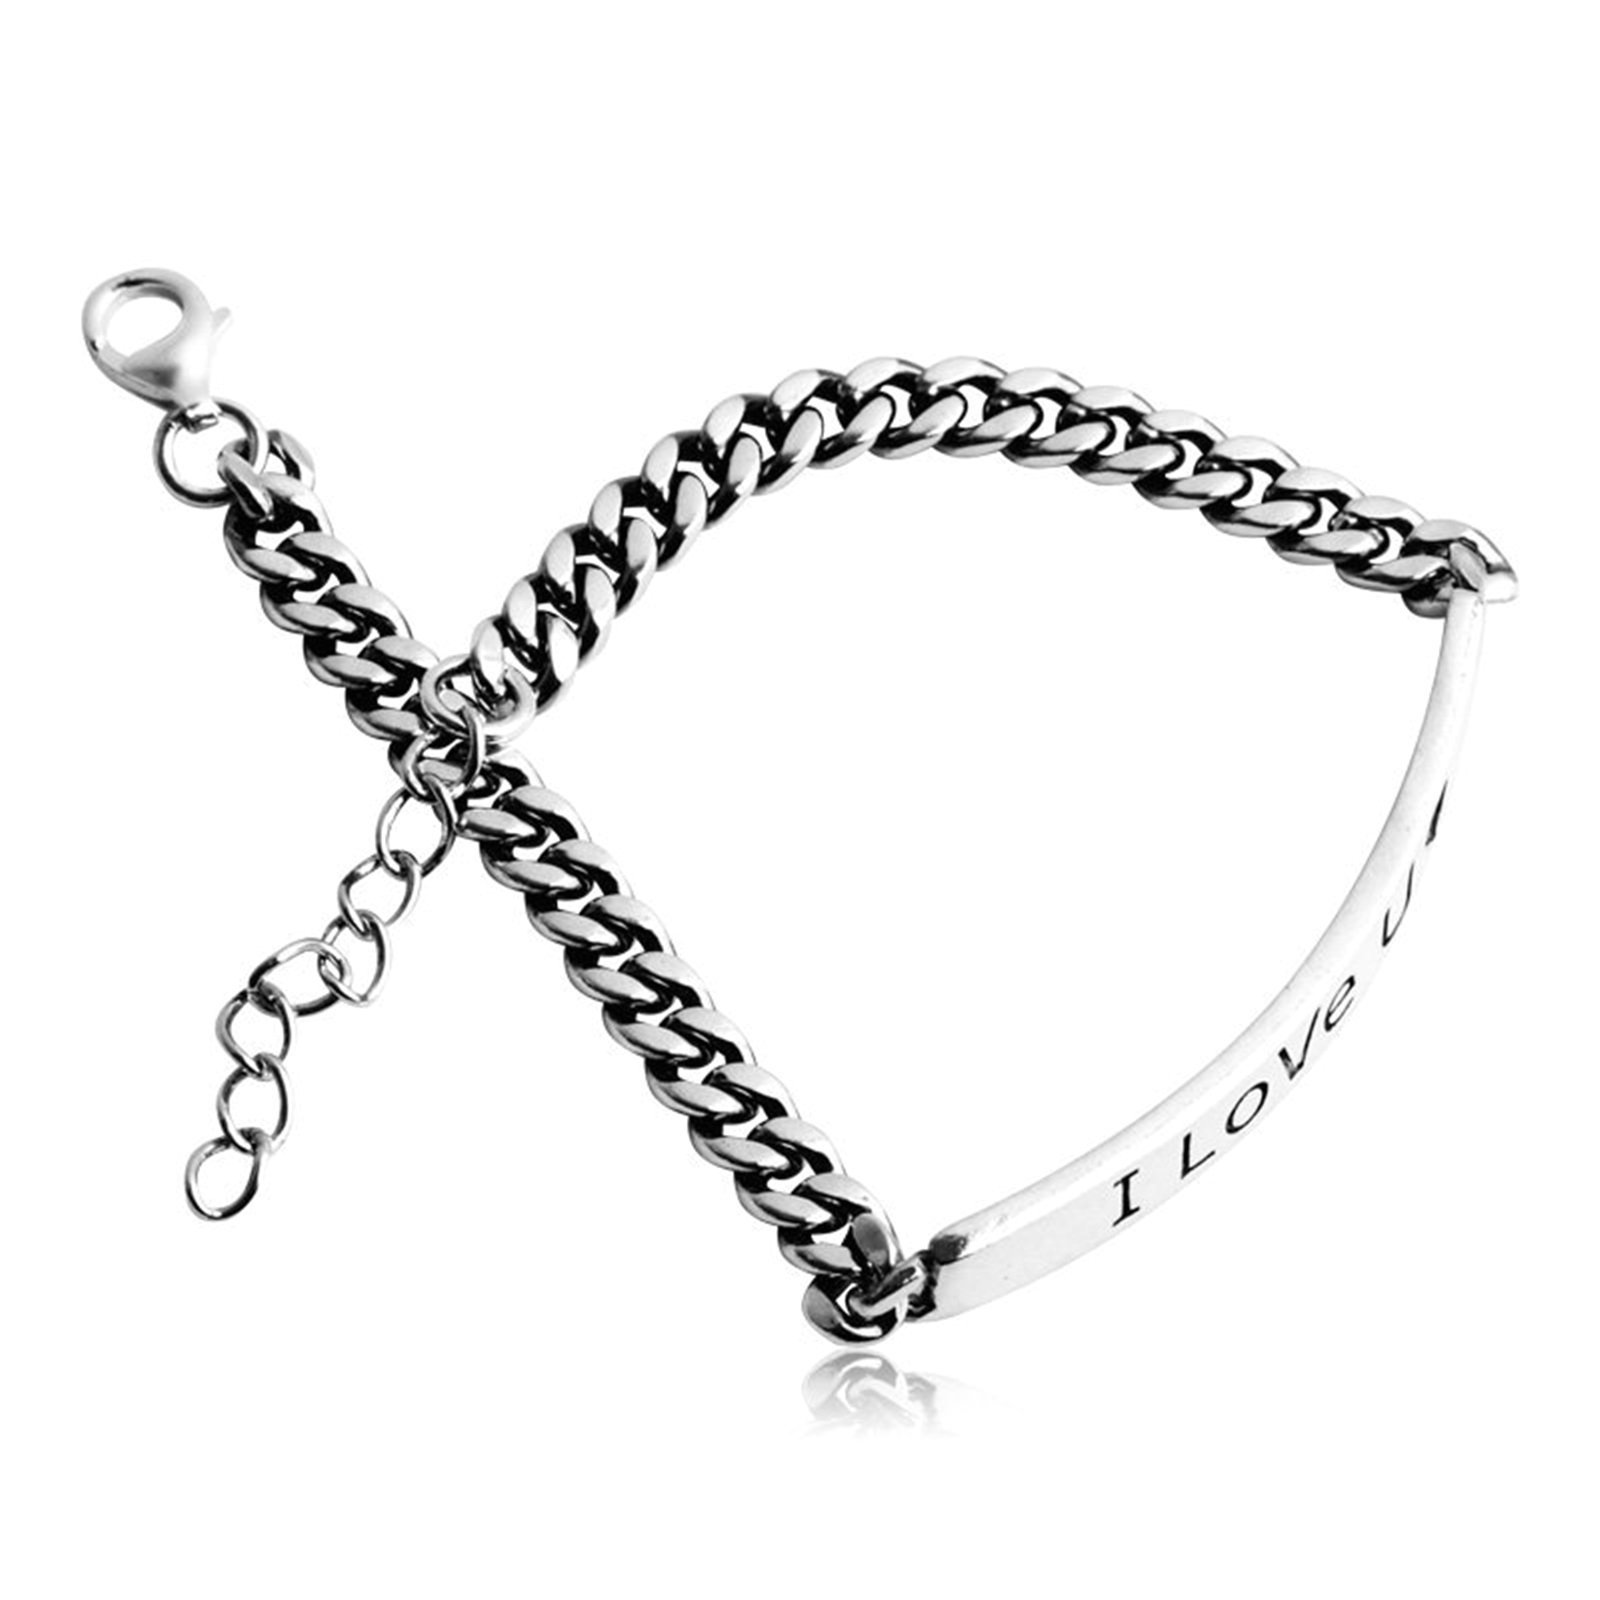 Daesar 925 Silver Bracelet For Women Heart I Love U Bracelet Silver Chain Length:17CM